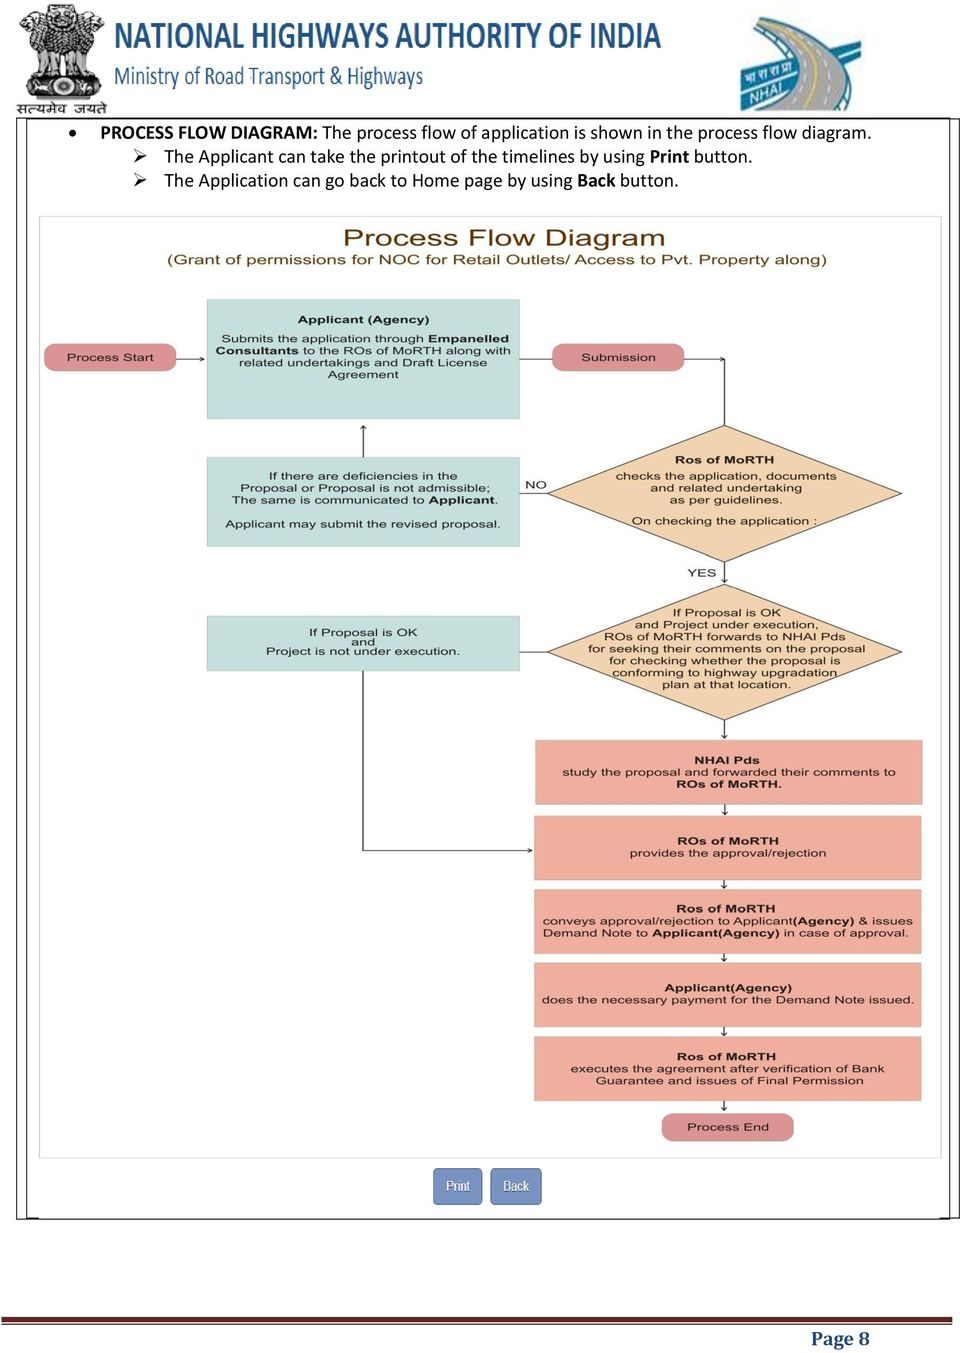 Aplication Tracking System Nhai Adminmanual Pdf Process Flow Diagram With Timeline The Applicant Can Take Printout Of Timelines By